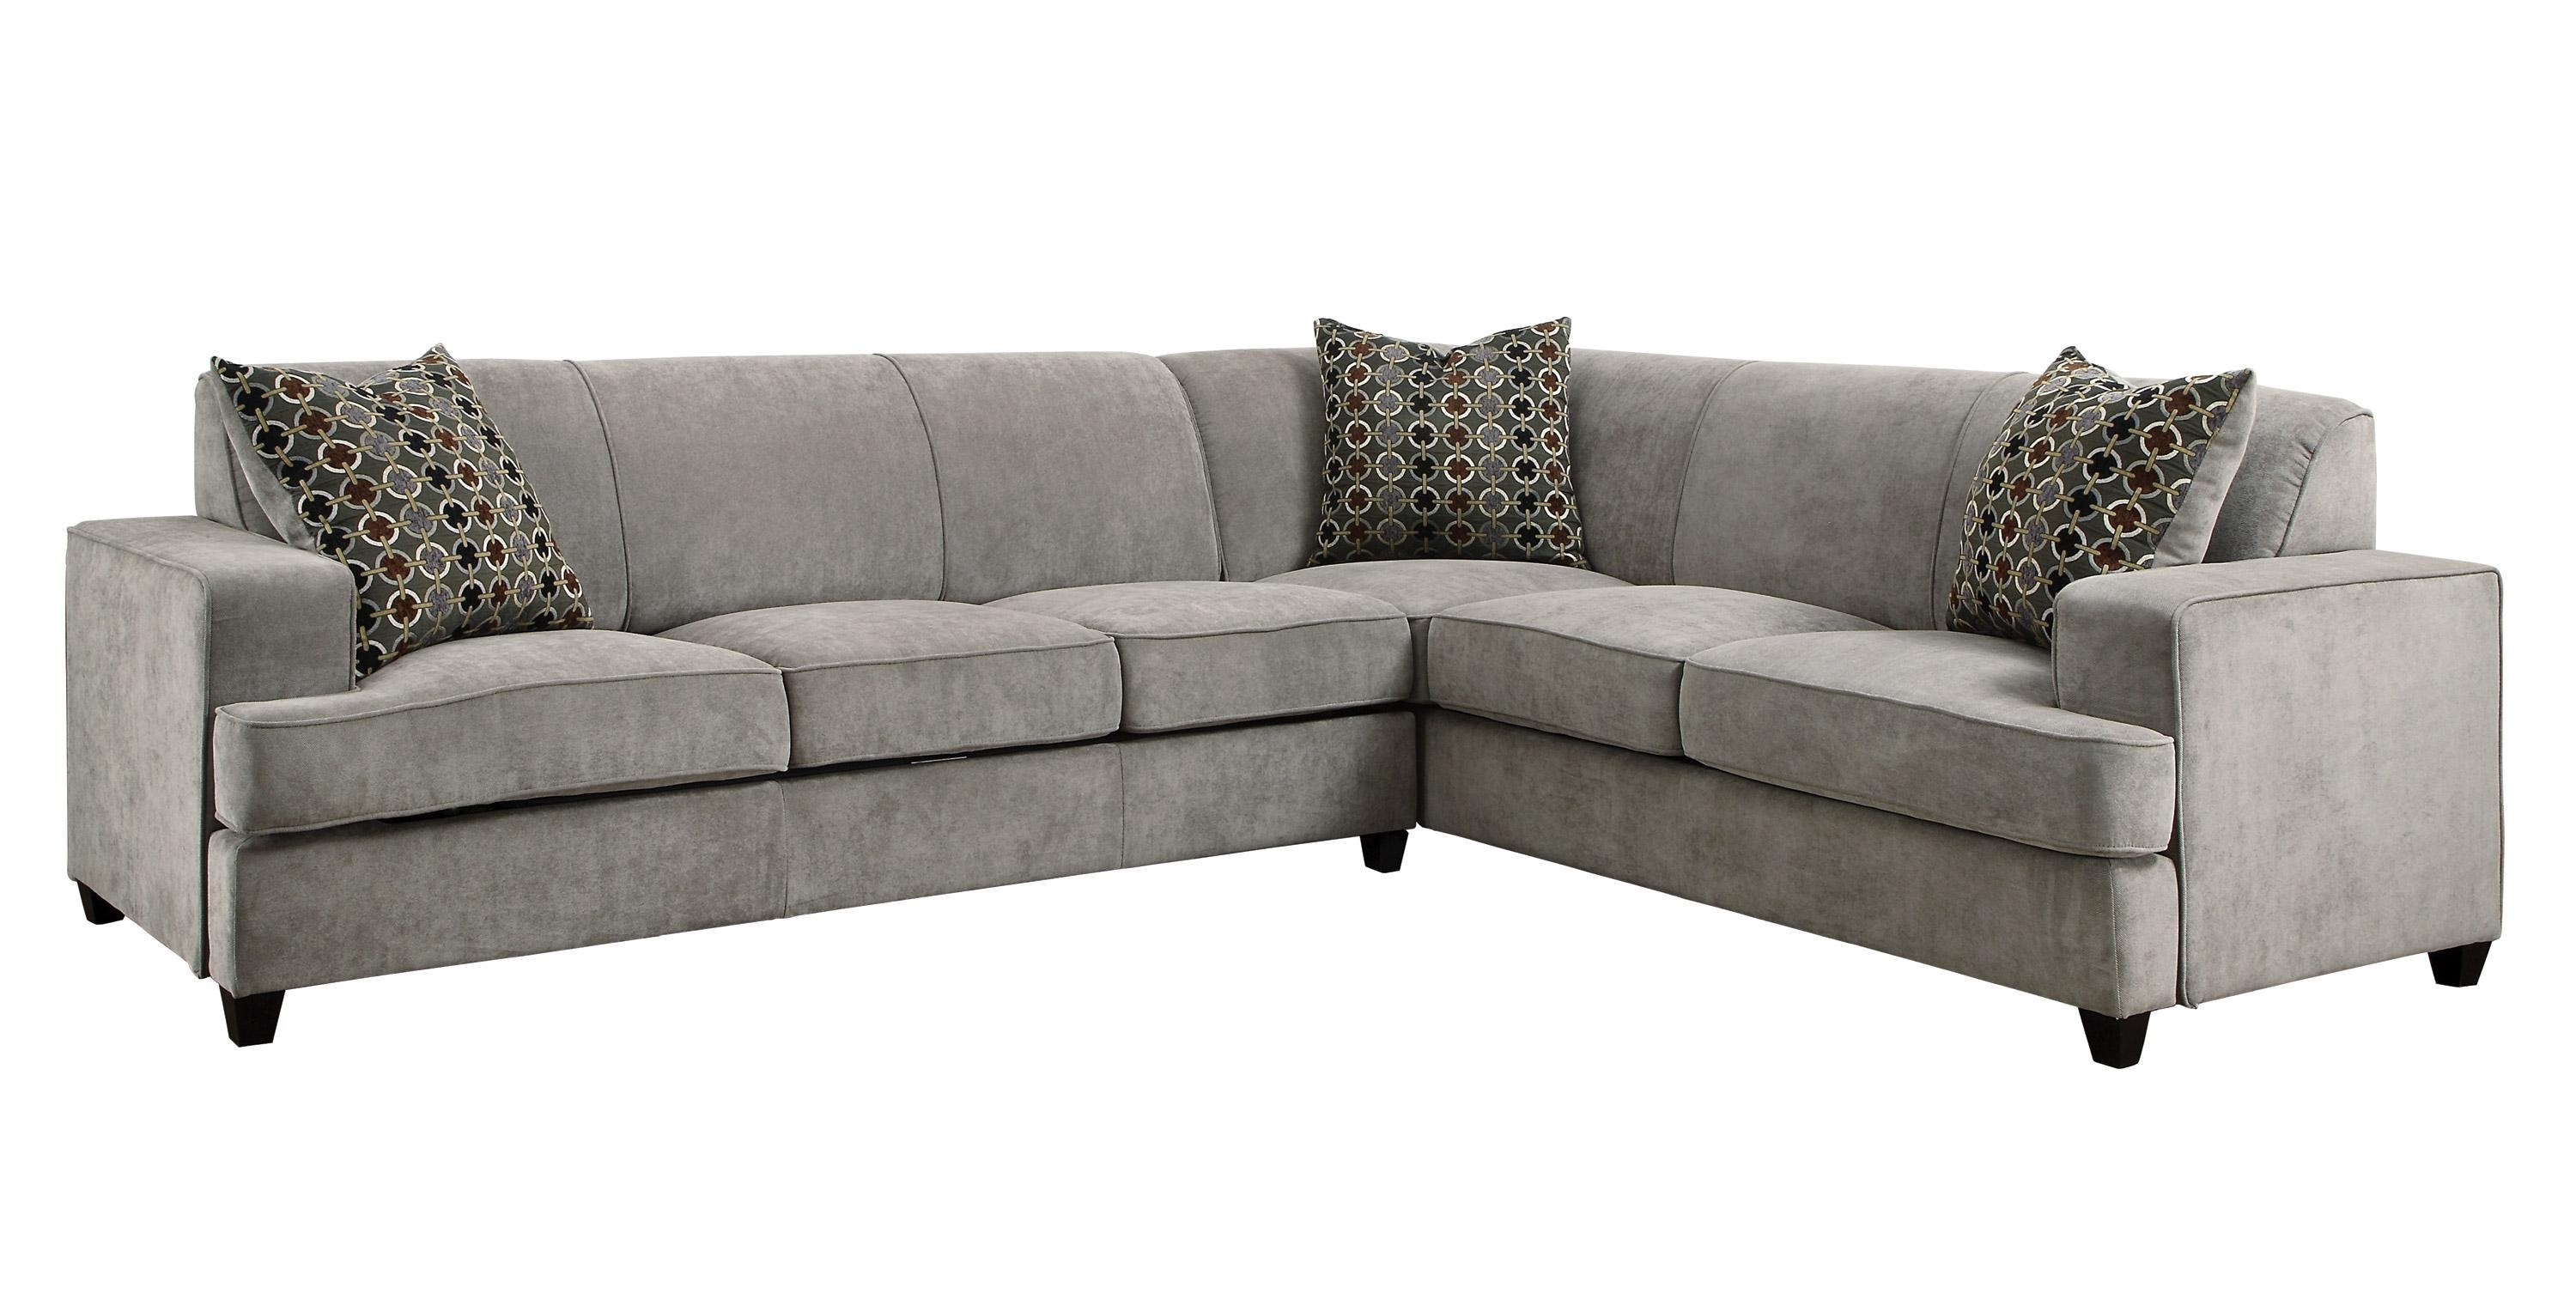 Sale: $1458.00 Tess Modern Grey Sectional Sofa With Sleeper throughout Contemporary Sectional Sofas (Image 12 of 15)